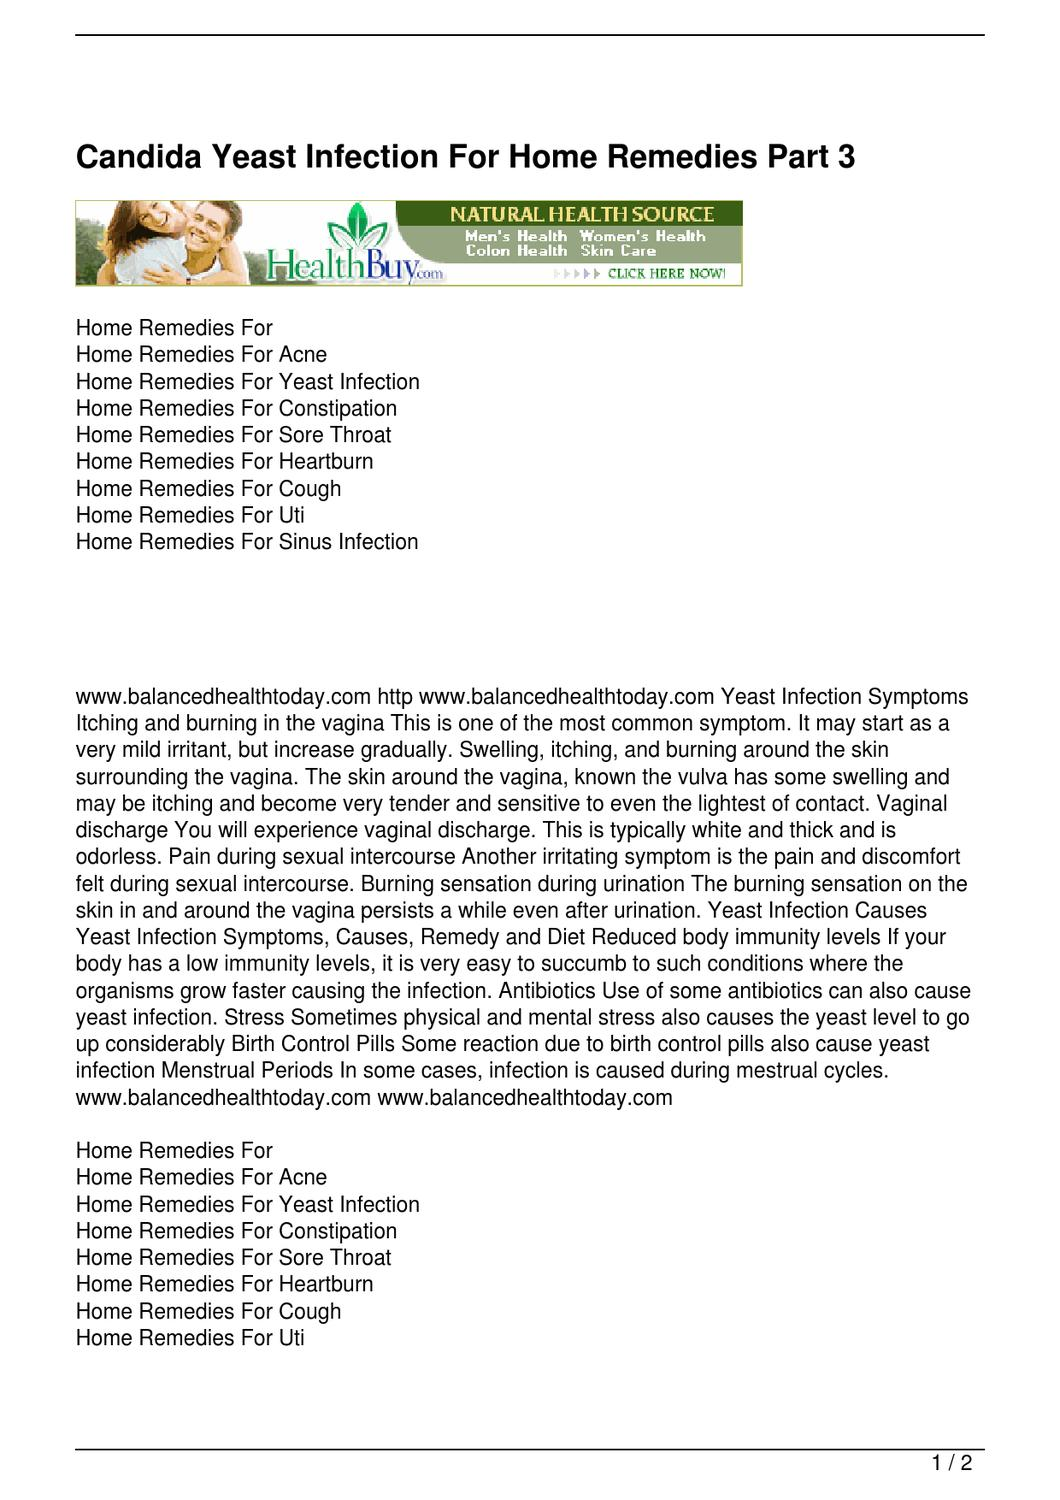 Candida Yeast Infection For Home Remedies Part 3 by John